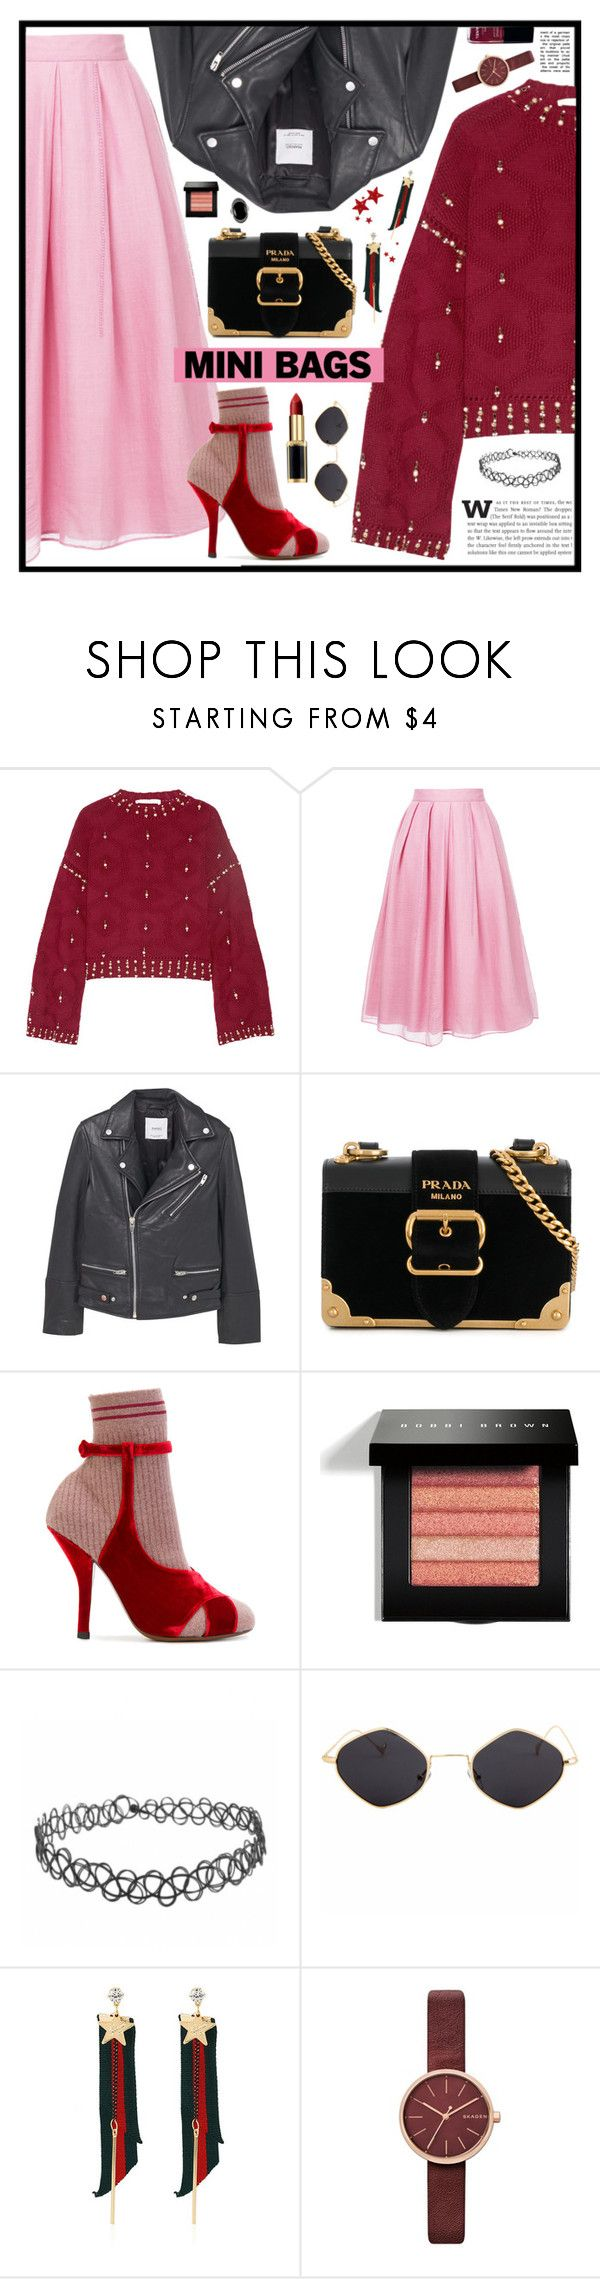 """""""NEW ME!"""" by monicamonii ❤ liked on Polyvore featuring Jonathan Simkhai, Jupe By Jackie, MANGO, Prada, Fendi, Bobbi Brown Cosmetics, WithChic, Skagen, Chanel and Le Vieux"""